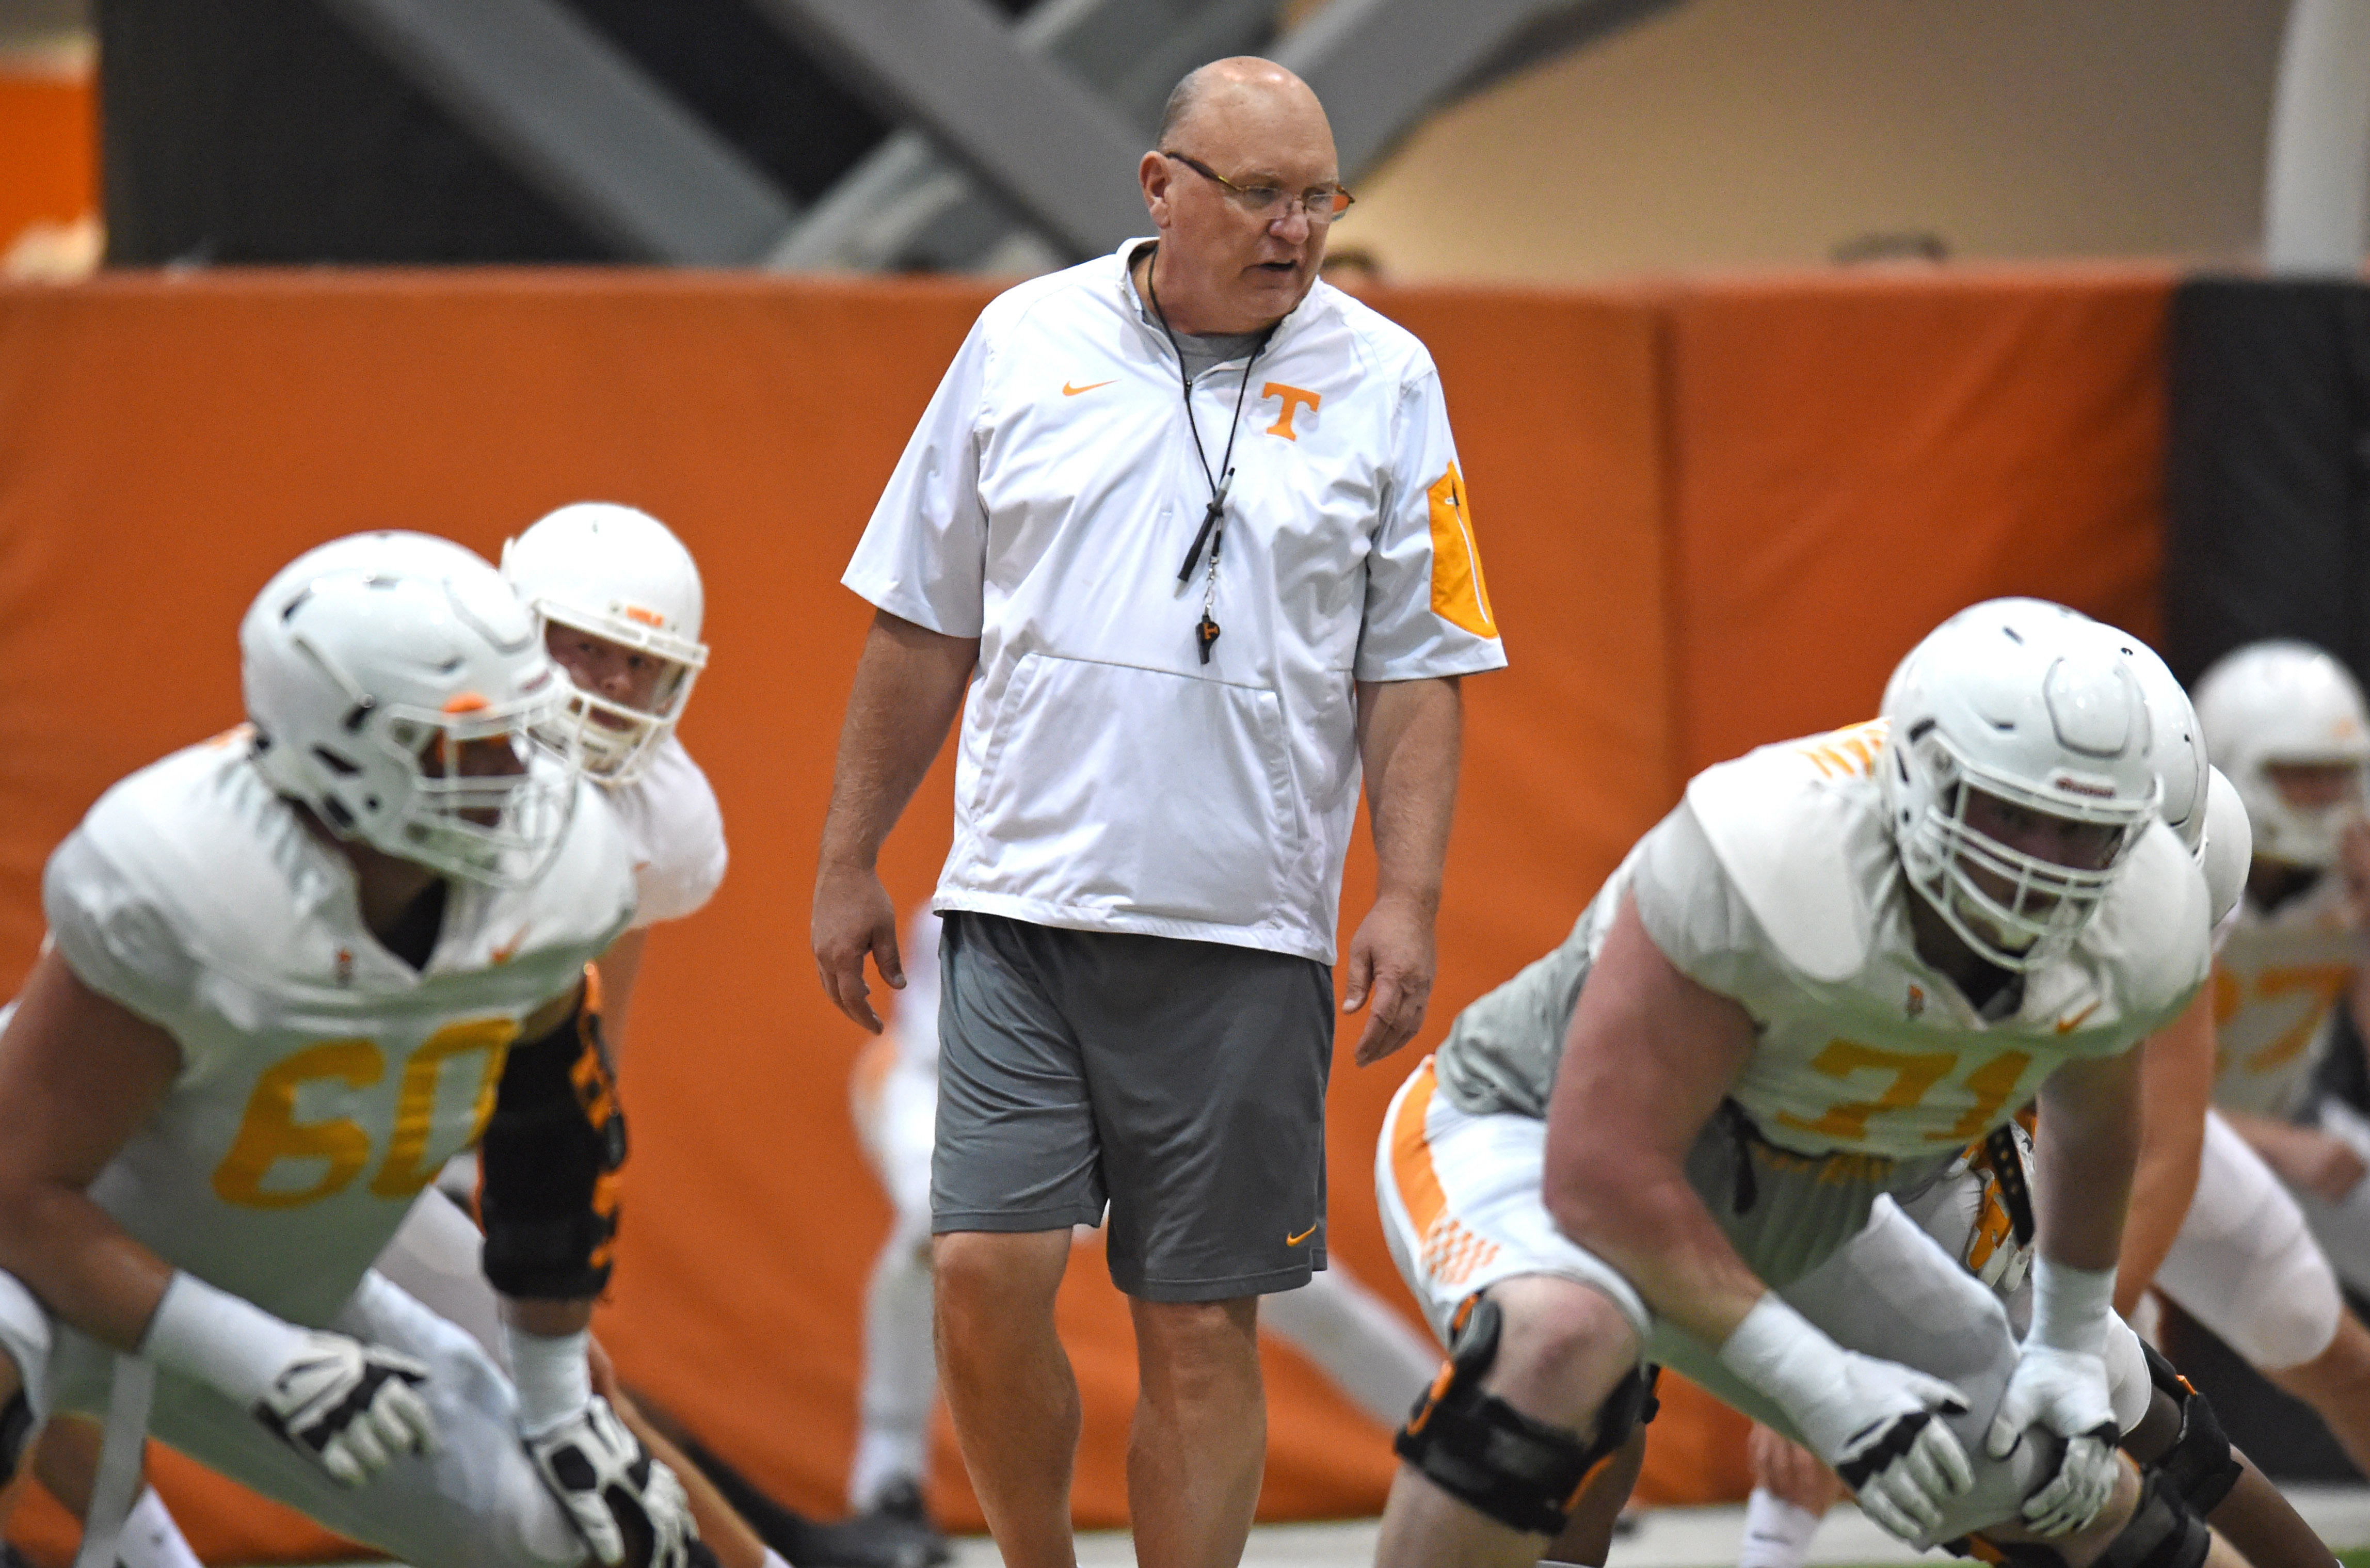 FILE -- In this March 24, 2016 file photo, Tennessee offensive coordinator Mike DeBord, center, watches as offensive linemen Austin Sanders (60) and Dylan Wiesman (71) warm up during NCAA college football practice in Knoxville, Tenn. DeBord and defensive